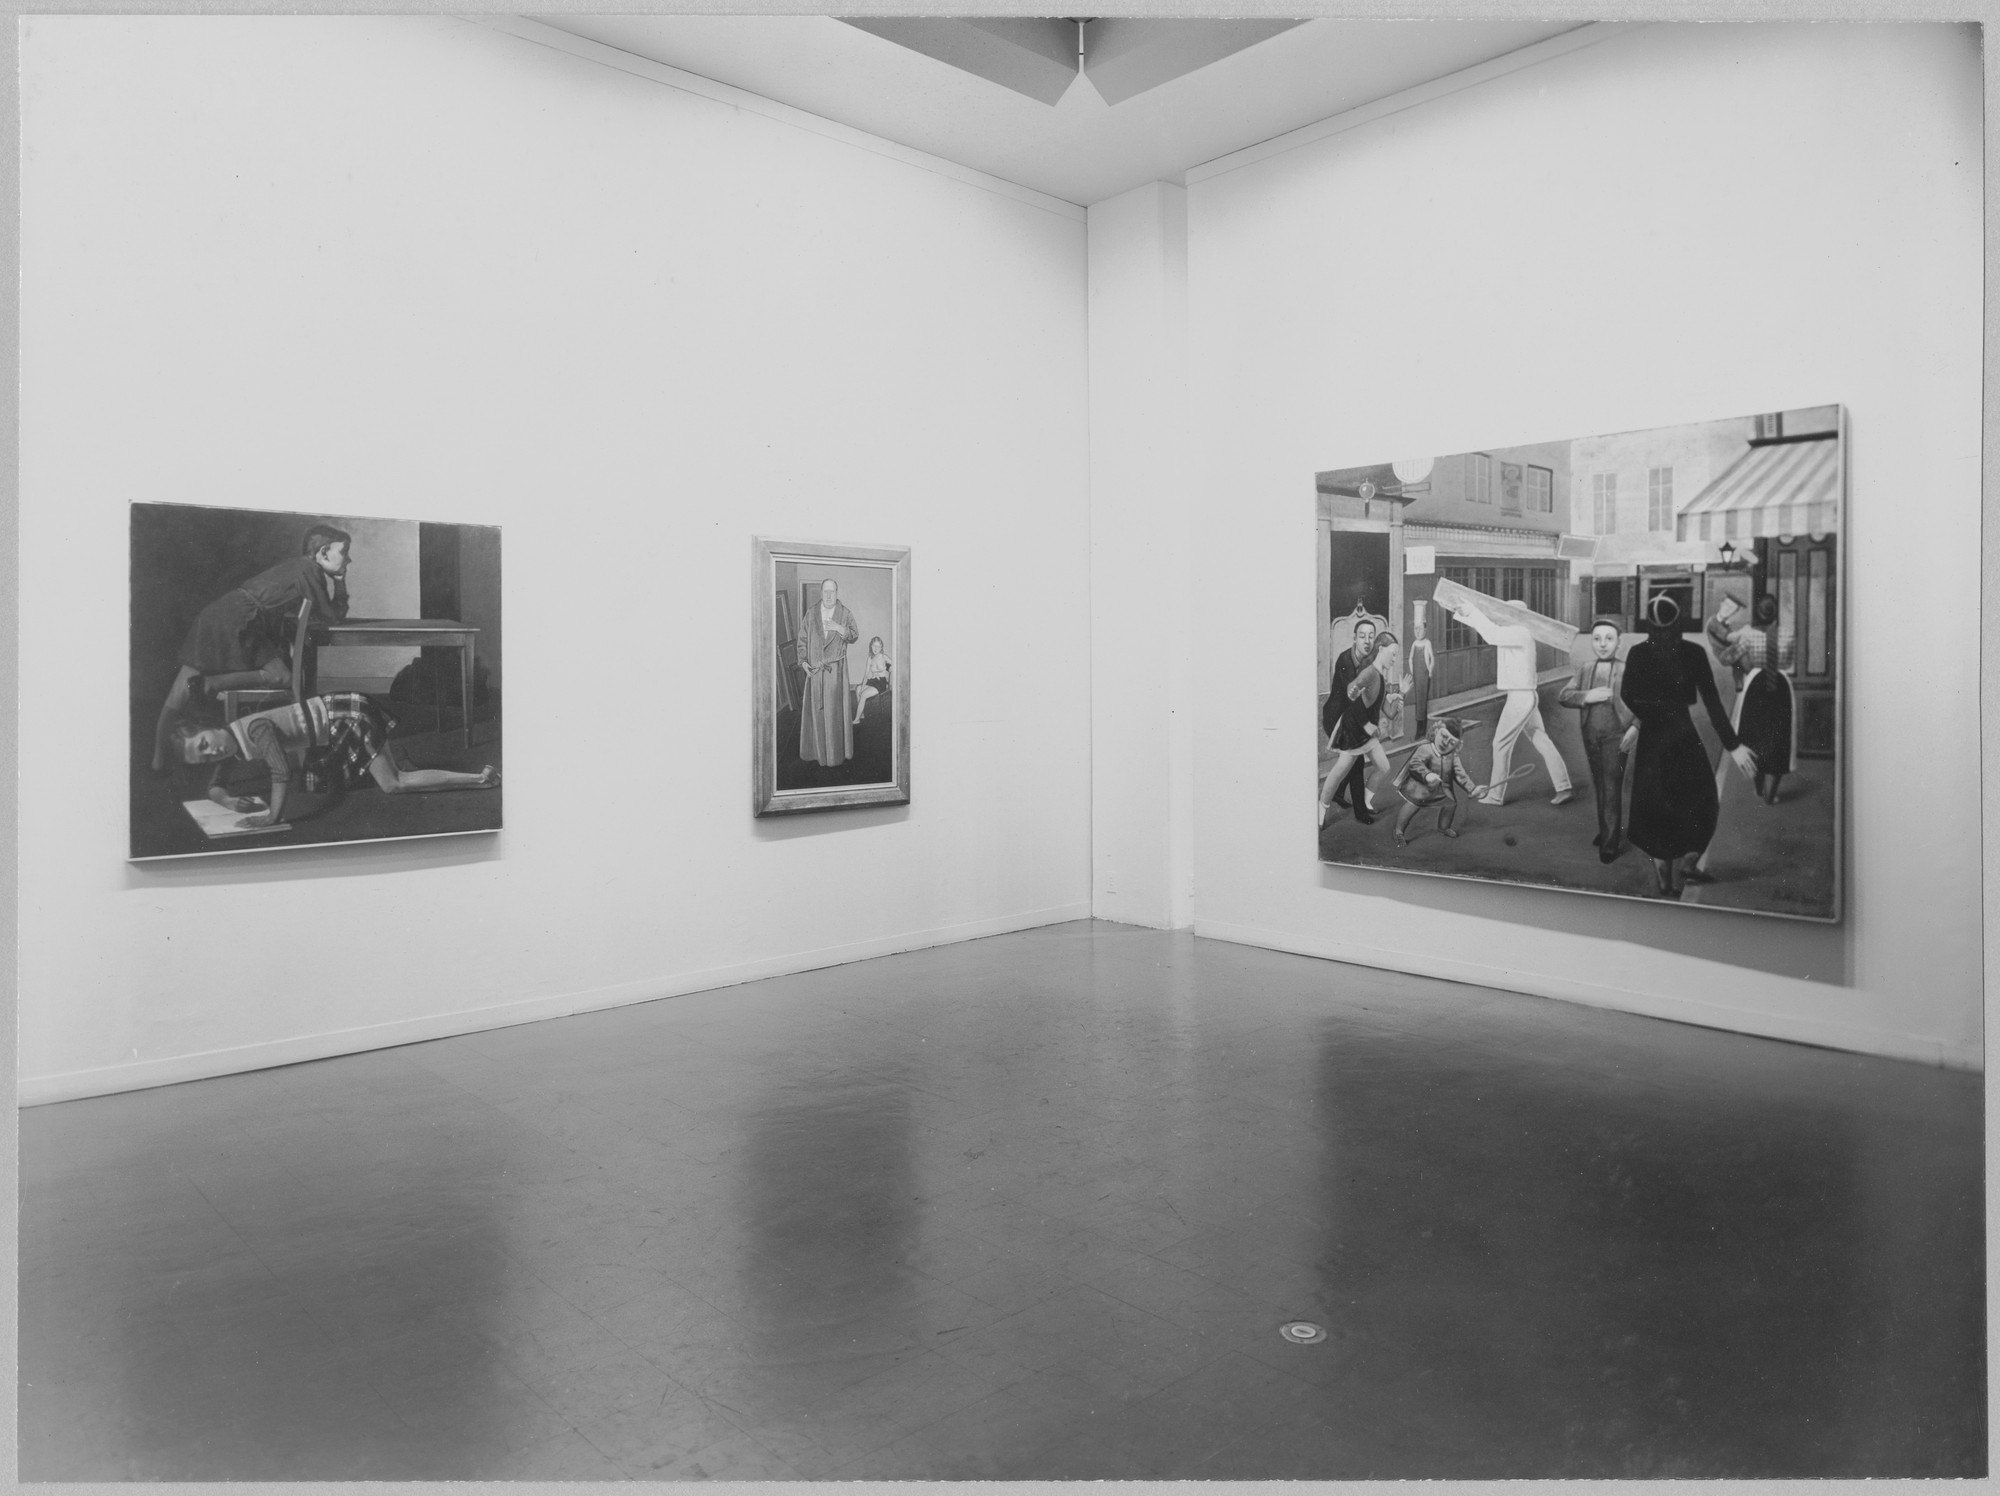 "Installation view of the exhibition, ""Balthus."" December 19, 1956–February 3, 1957. Photographic Archive. The Museum of Modern Art Archives, New York. IN611.1. Photograph by Soichi Sunami."